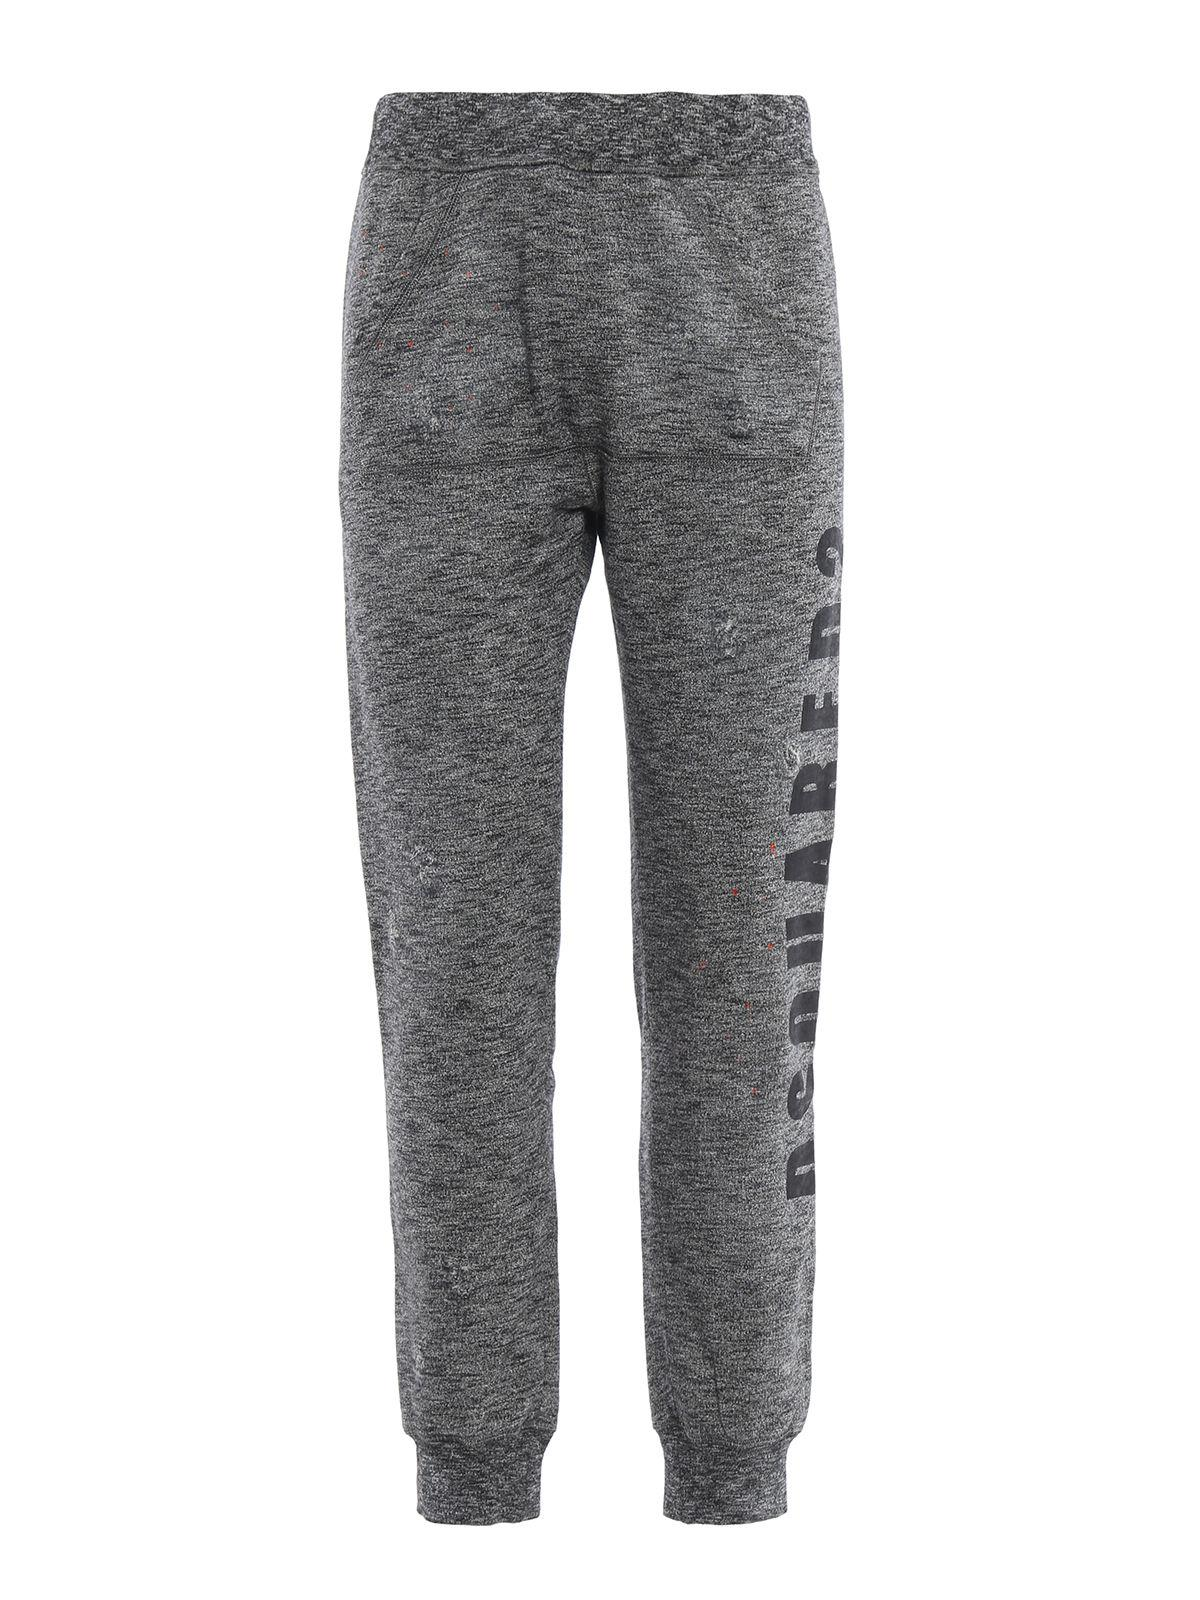 8693ffbea204 Dsquared² Jersey Logo Gym Pant in Gray for Men - Lyst